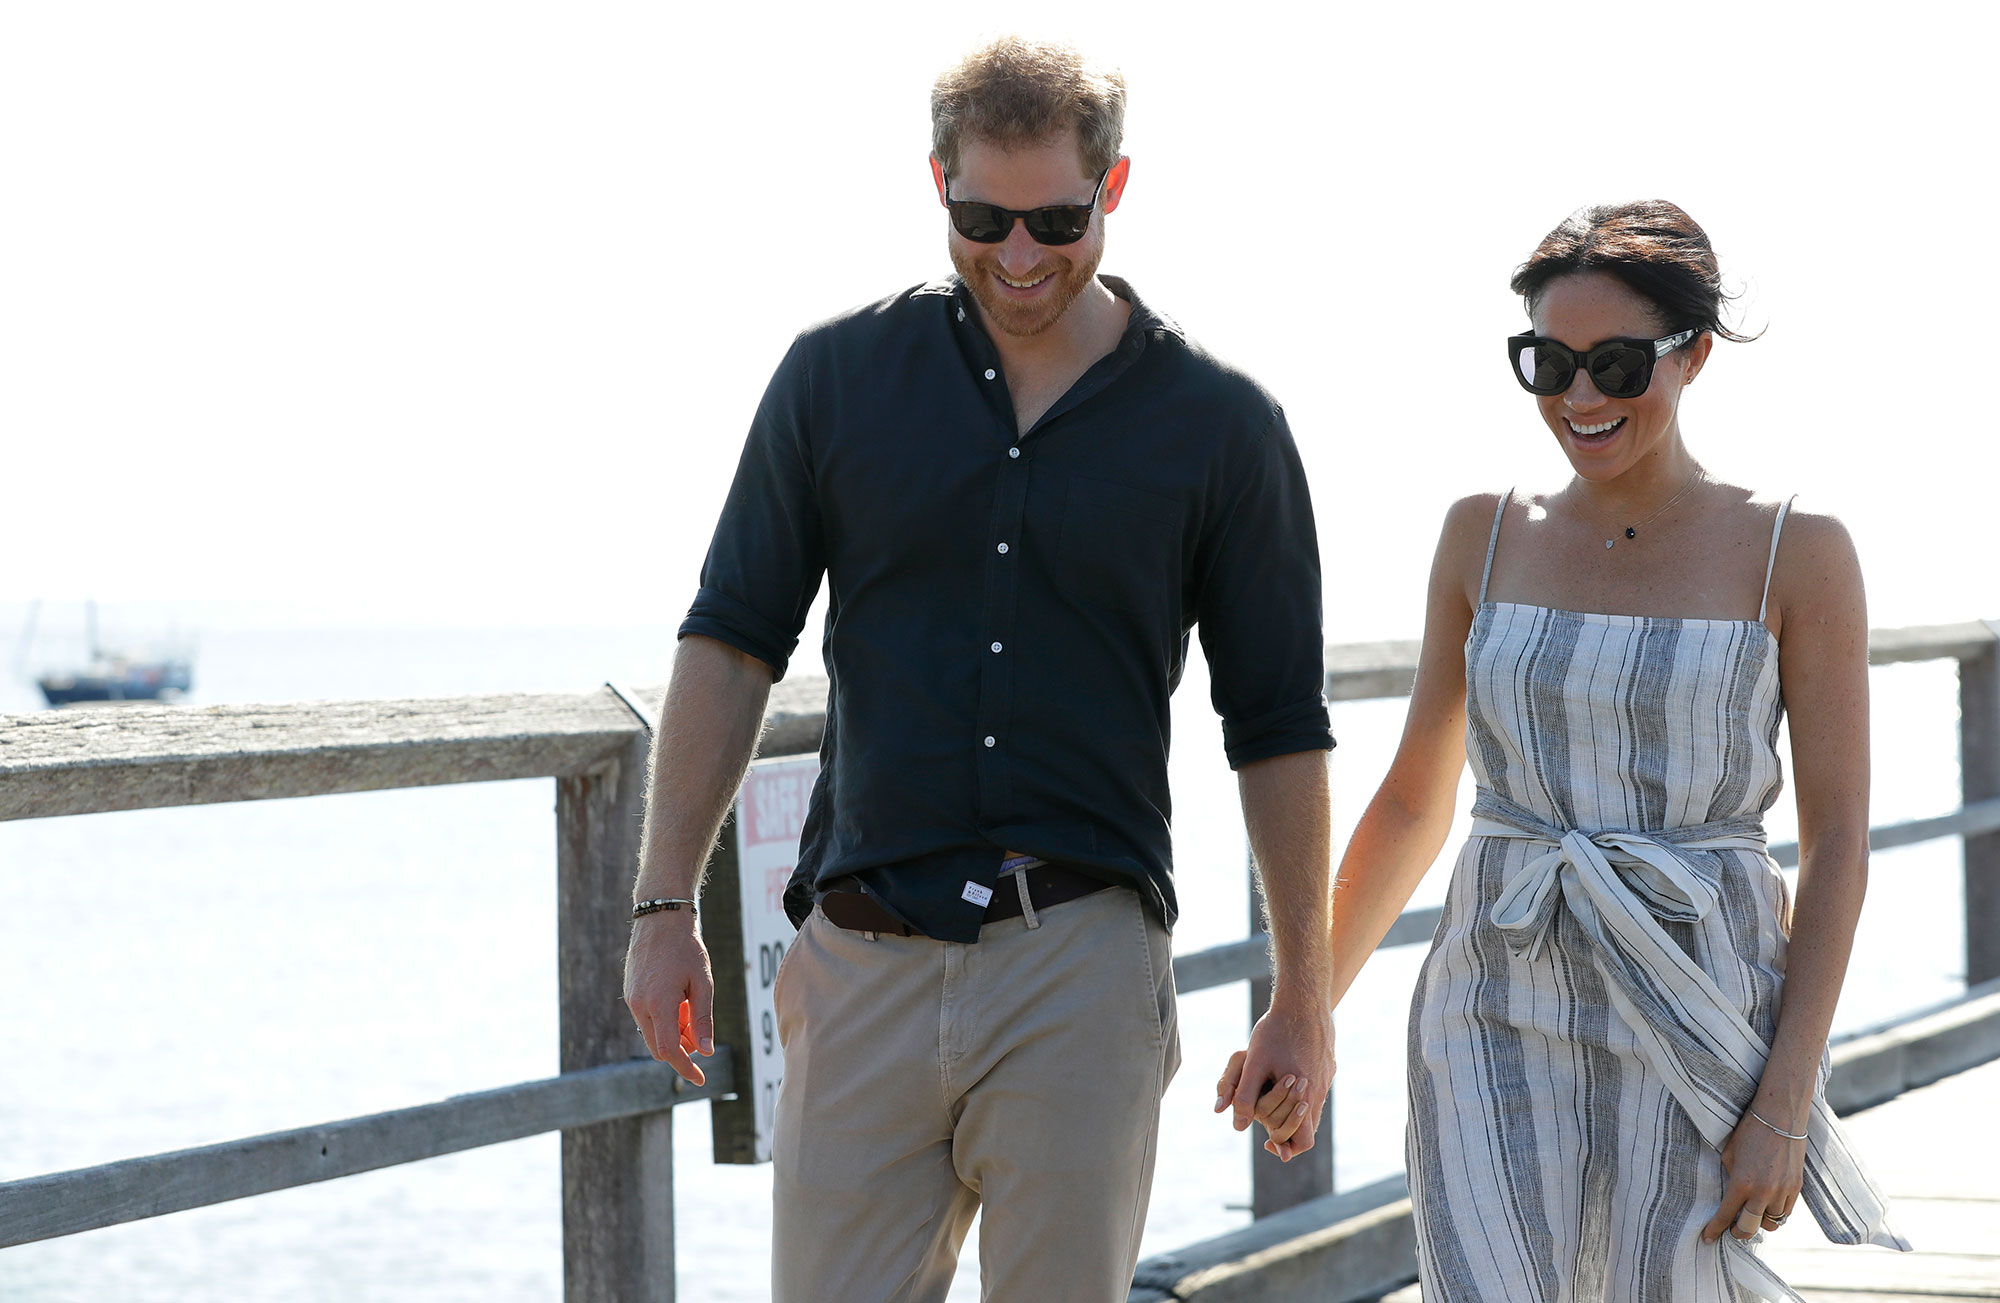 "<div class=""meta image-caption""><div class=""origin-logo origin-image none""><span>none</span></div><span class=""caption-text"">Britain's Prince Harry, left, and Meghan, Duchess of Sussex walk along Kingfisher Bay Jetty during a visit to Fraser Island, Australia, Monday, Oct. 22, 2018 (Kirsty Wigglesworth, Pool/AP Photo)</span></div>"